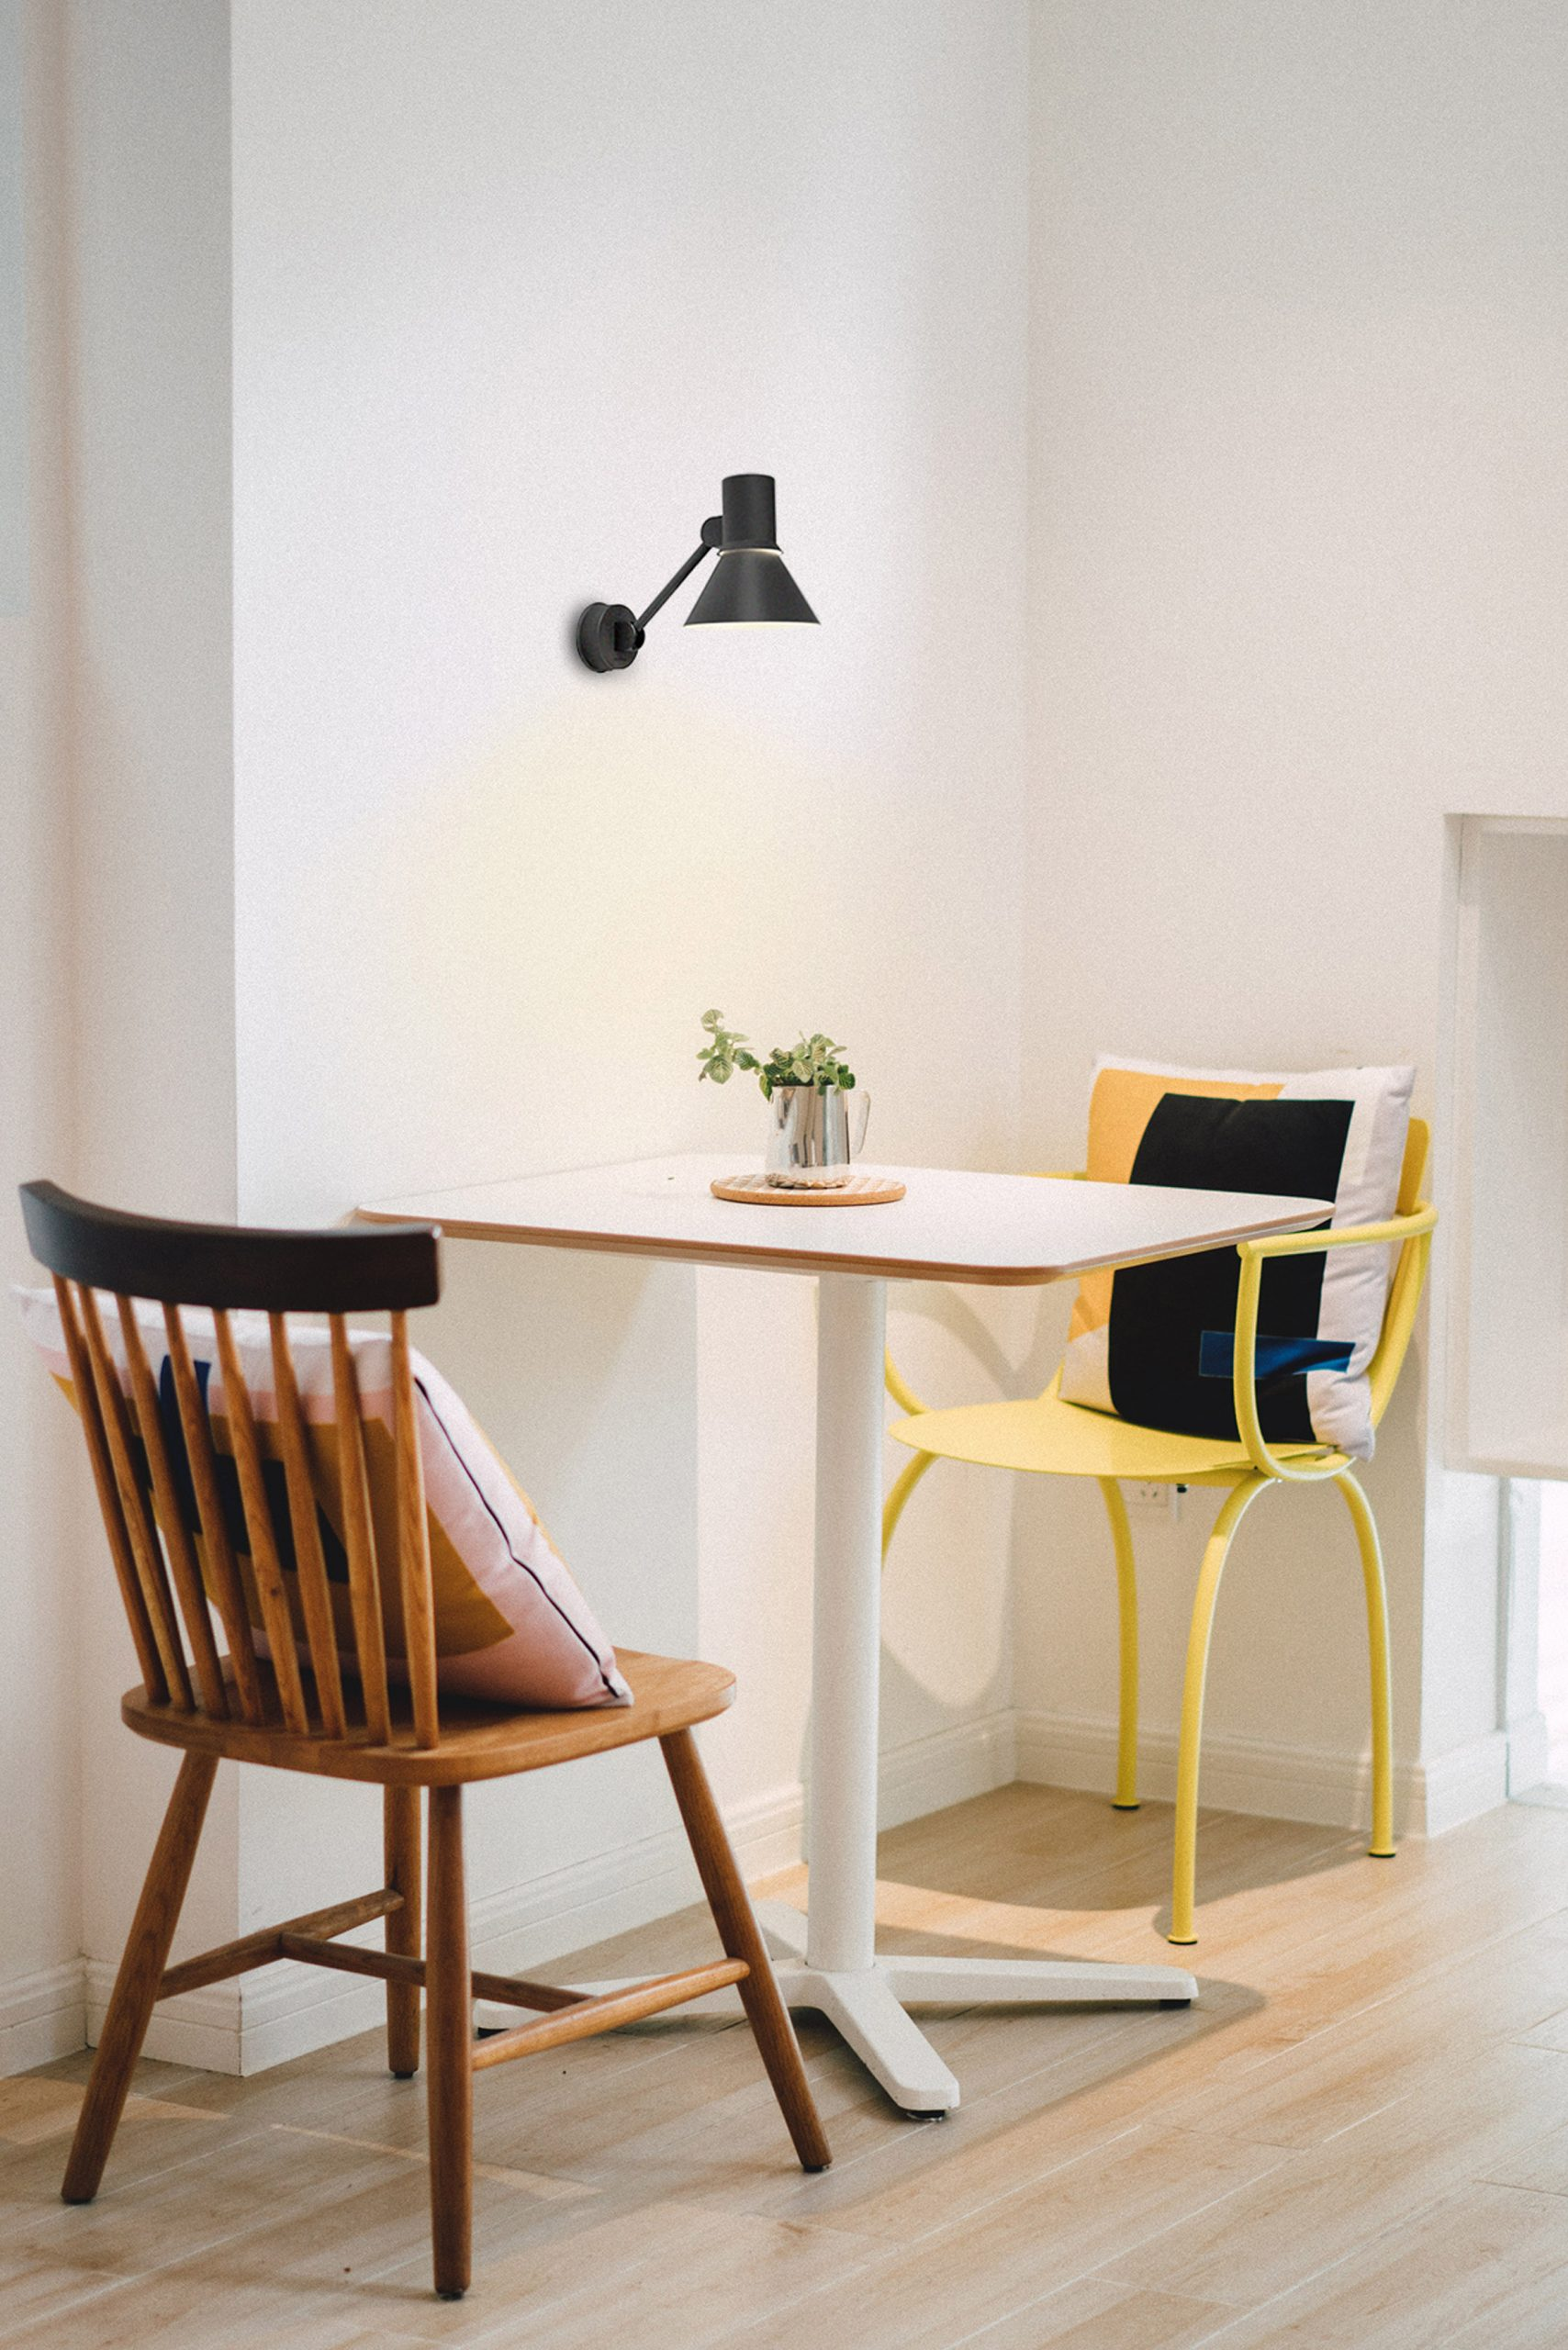 Black W2 wall light by Anglepoise in a kitchen